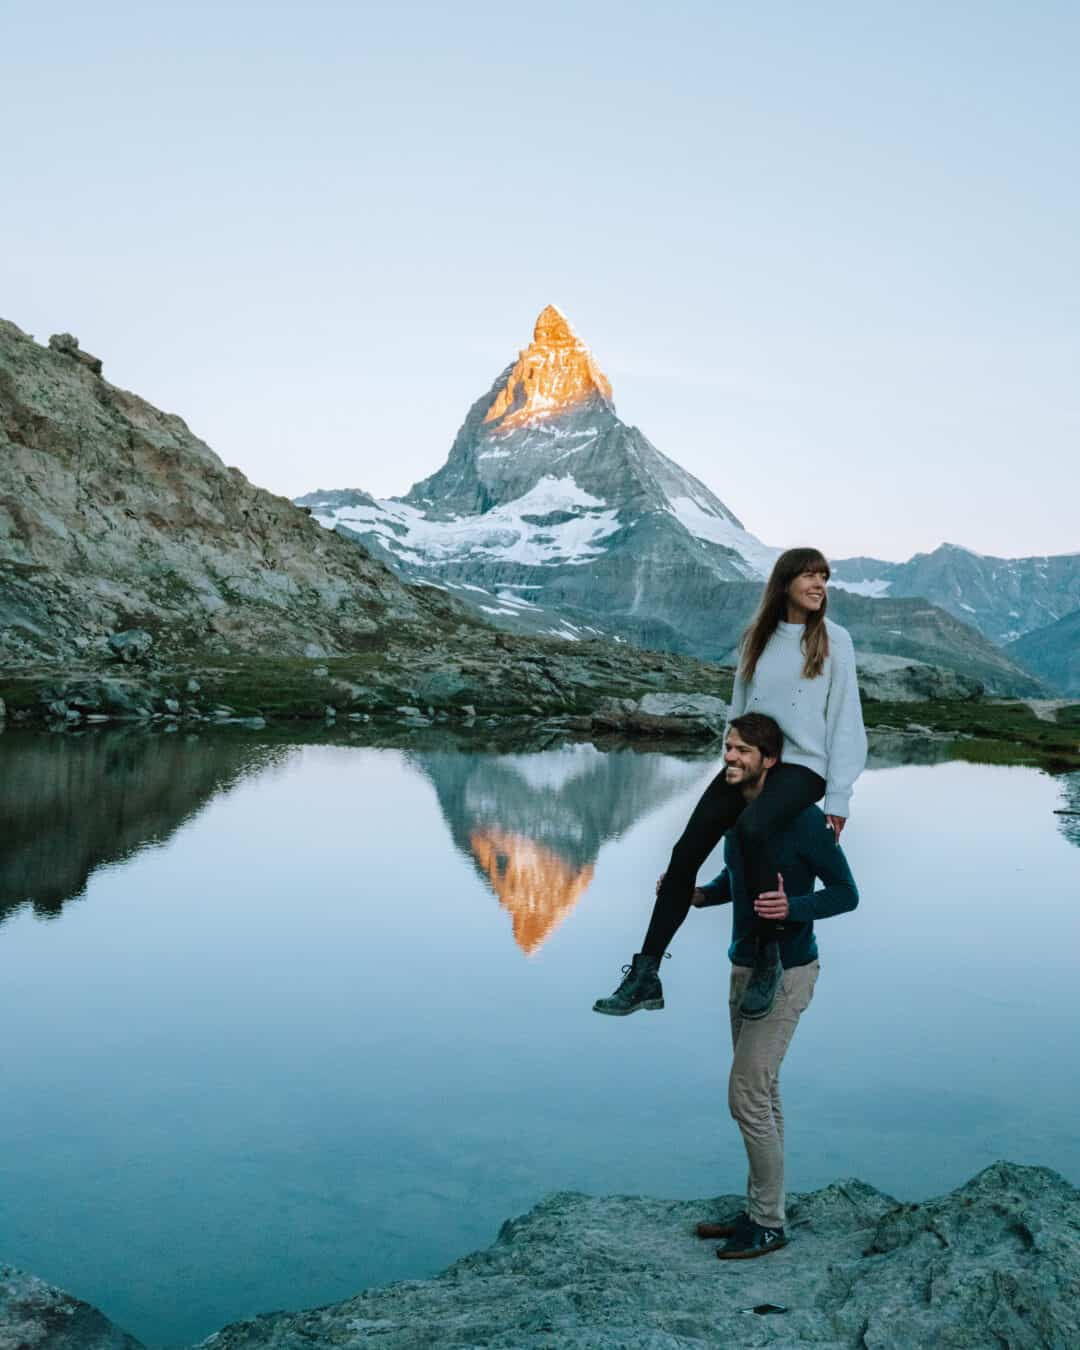 Switzerland Zermatt Matterhorn Sunrise Couple